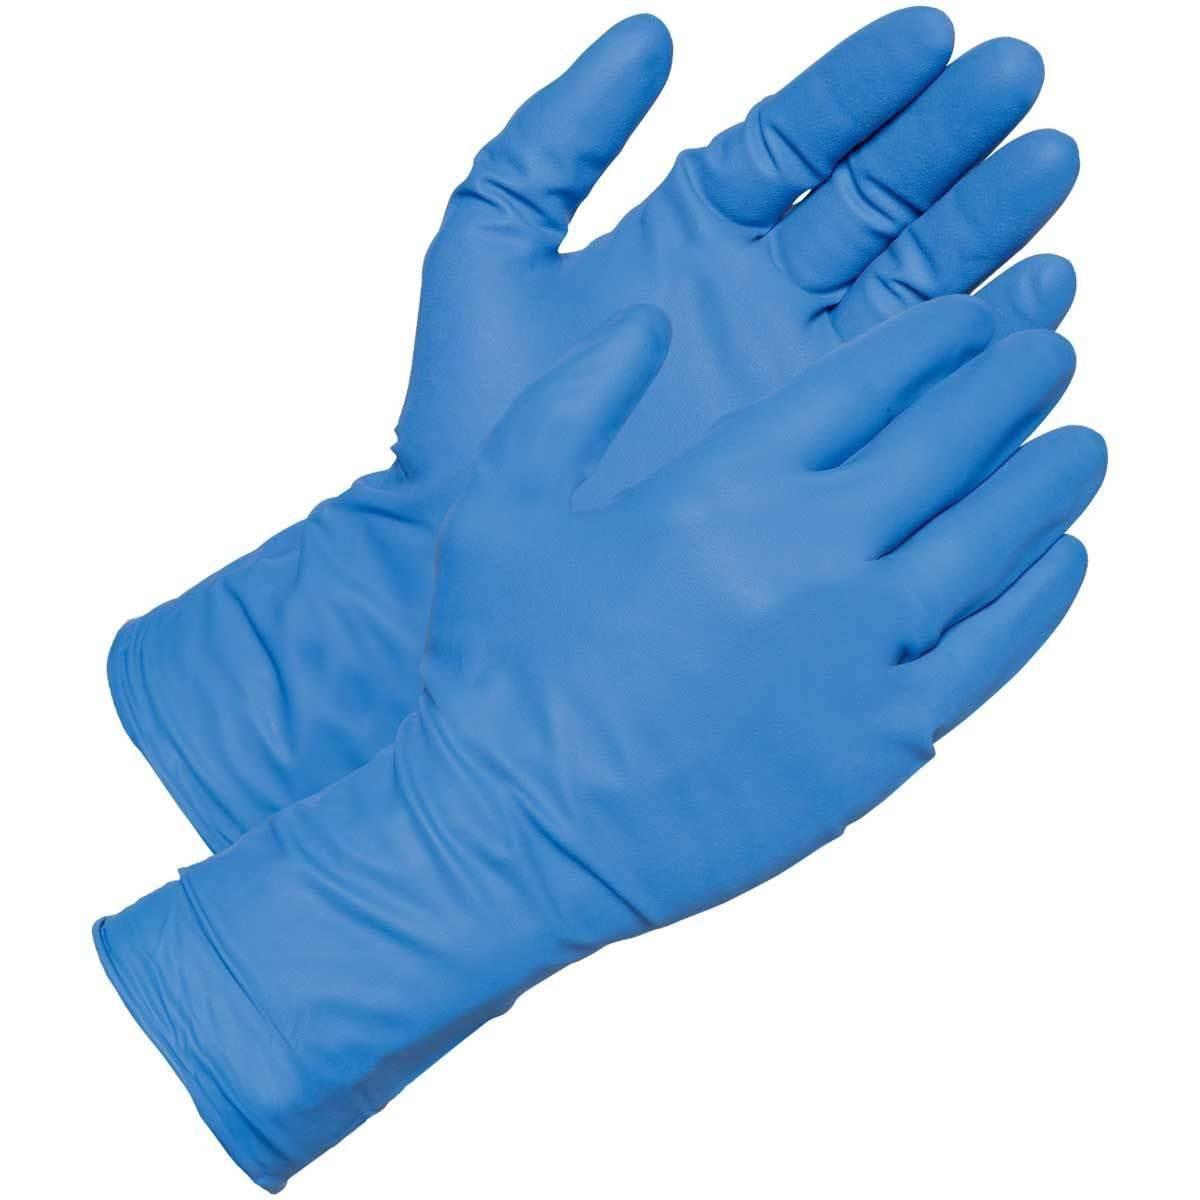 OYTRO Unisex Disposable Medical Natural Latex Rubber Surgical Gloves Sterile Gloves